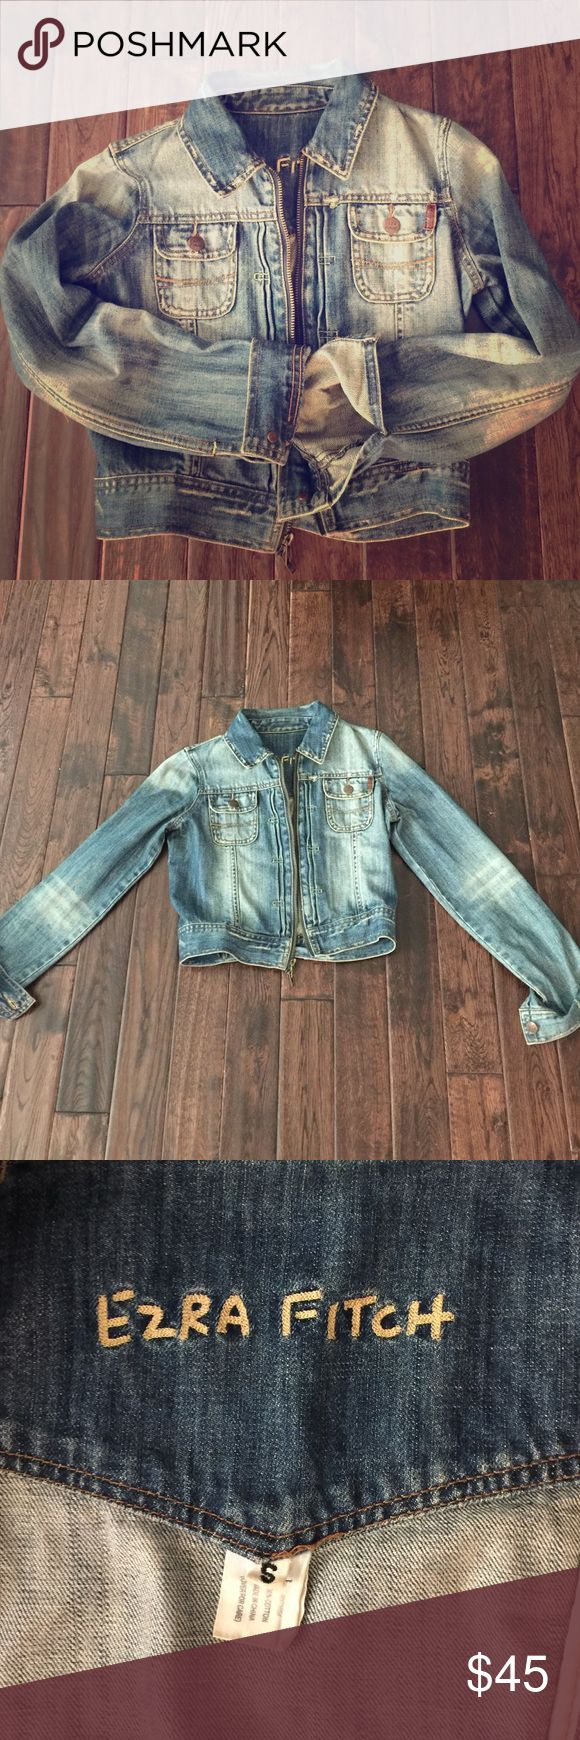 Cropped Abercrombie Jean jacket size Small Size small Cropped Abercrombie Jean jacket great condition worn a few times. When zipped stops above the belly button Abercrombie & Fitch Jackets & Coats Jean Jackets